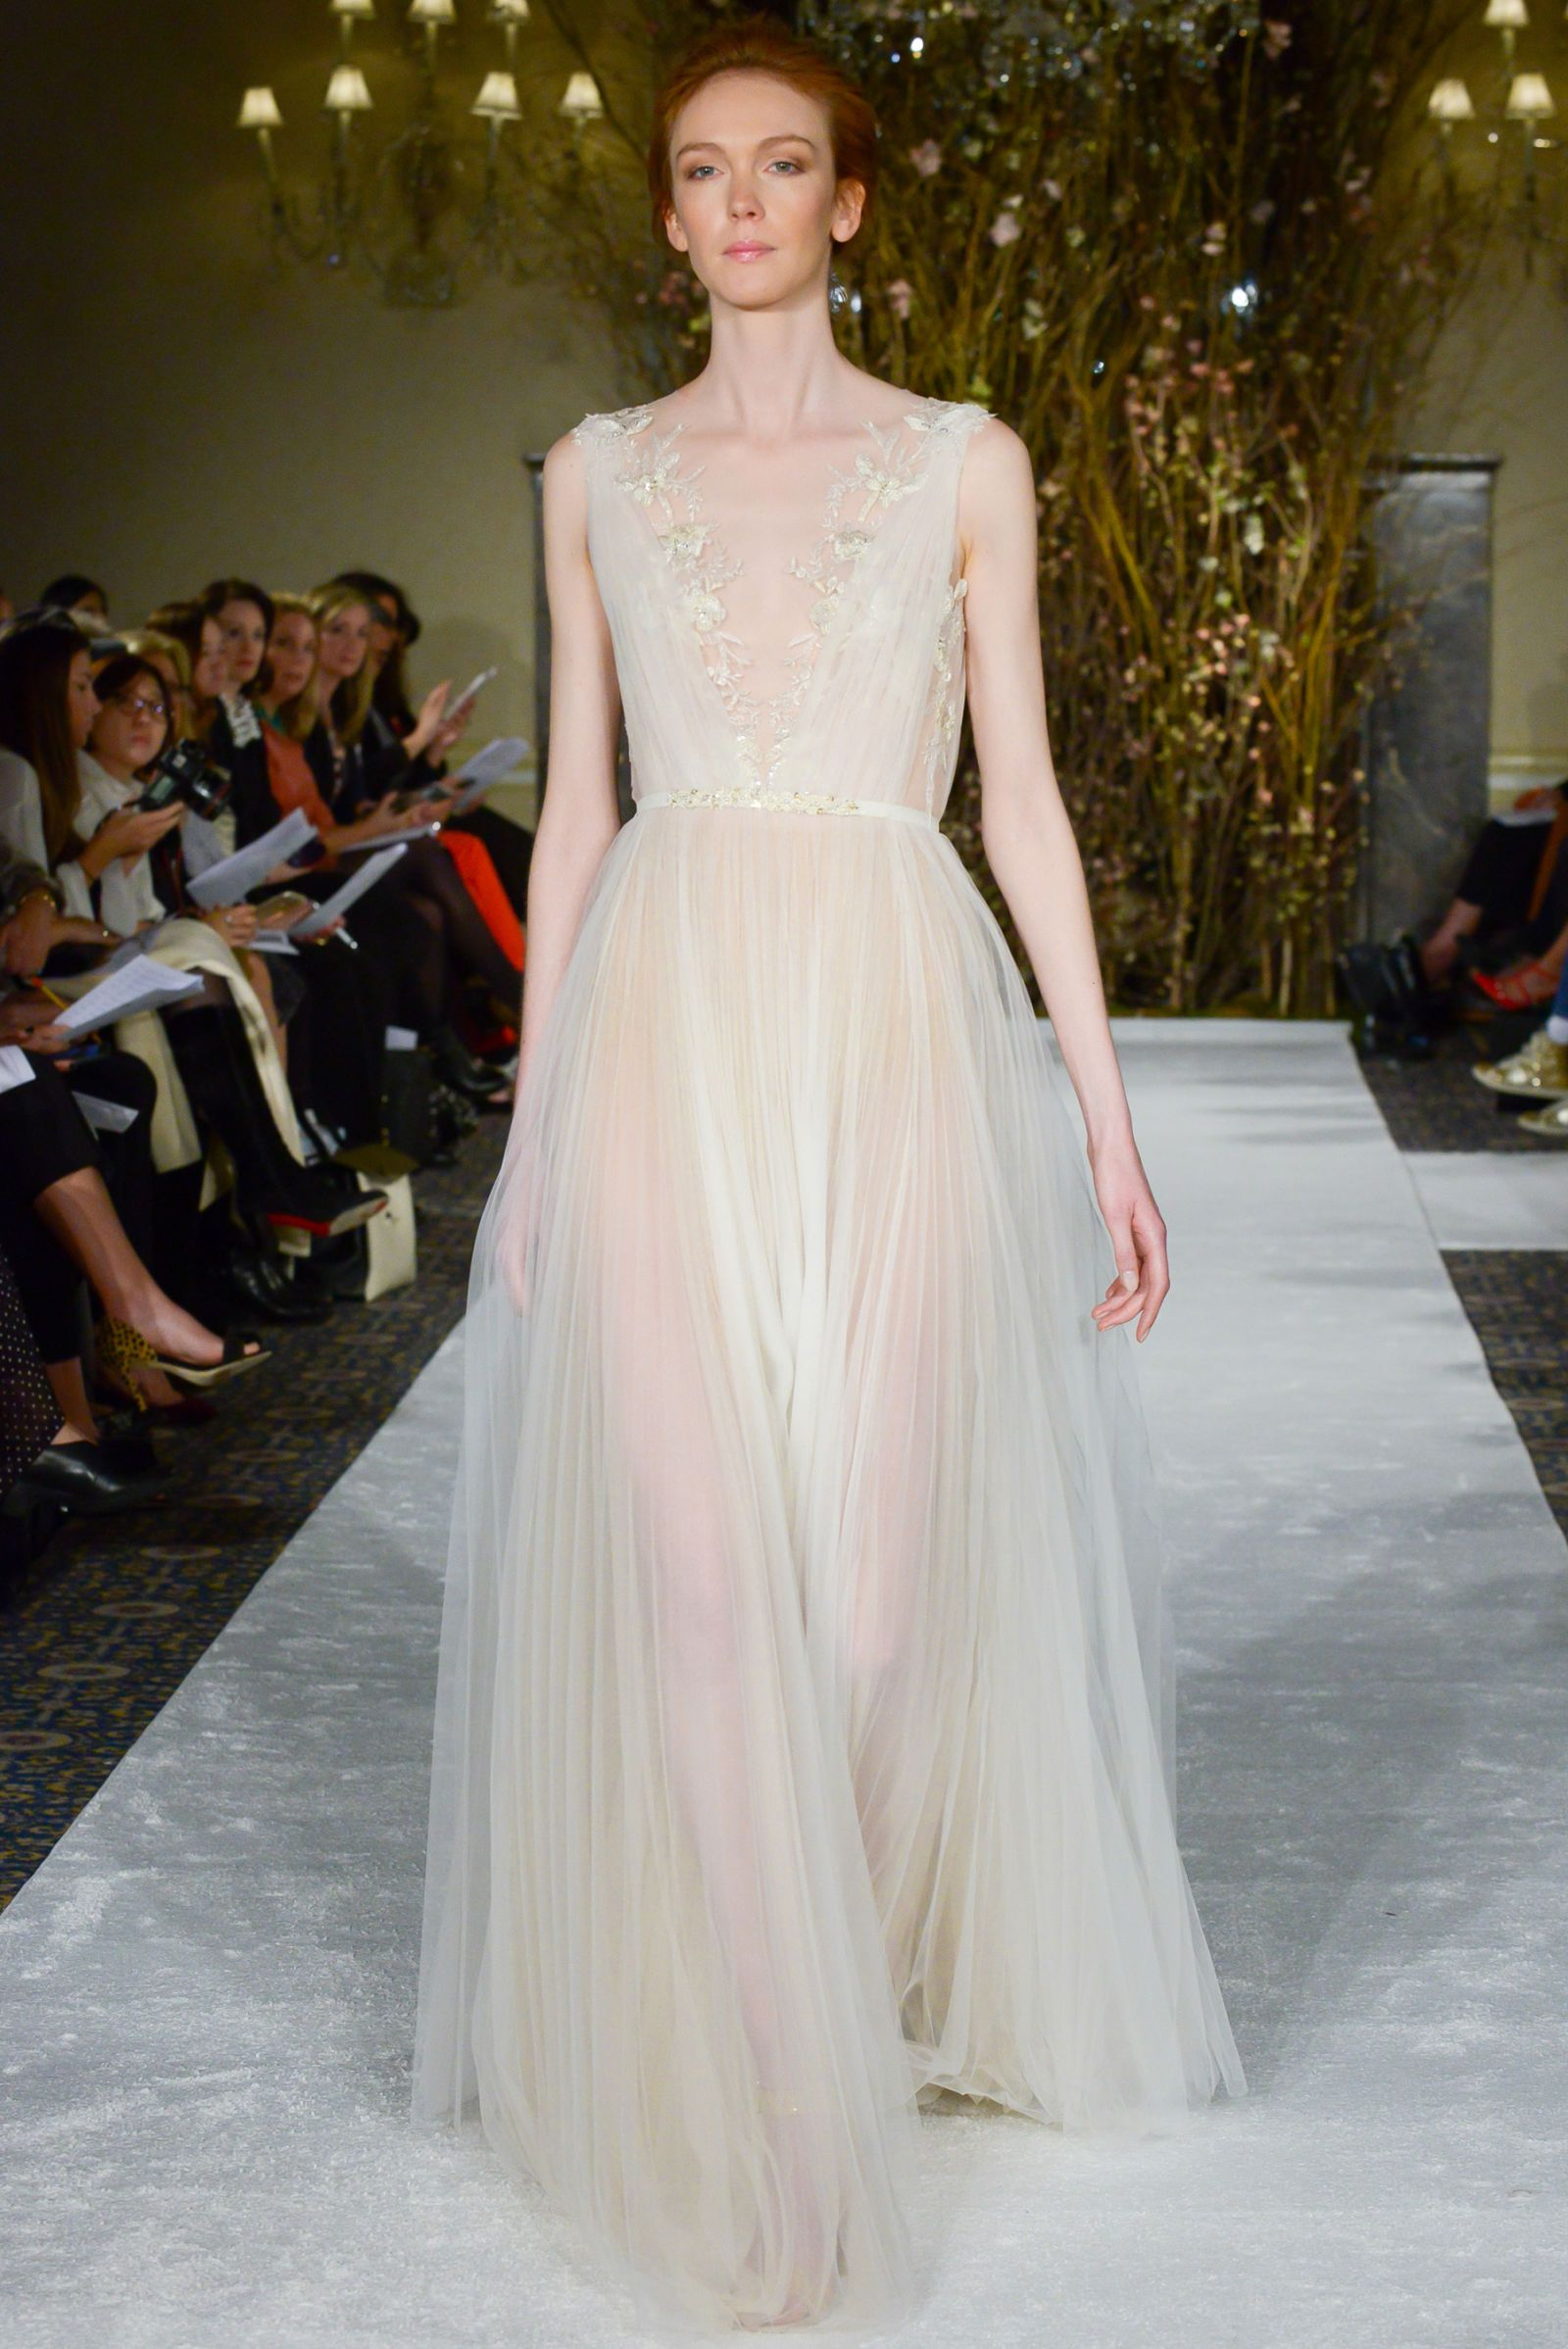 Watch Best of Bridal Fashion Week: 25 Wedding Gowns From Marchesa, Vera Wang, andMore video